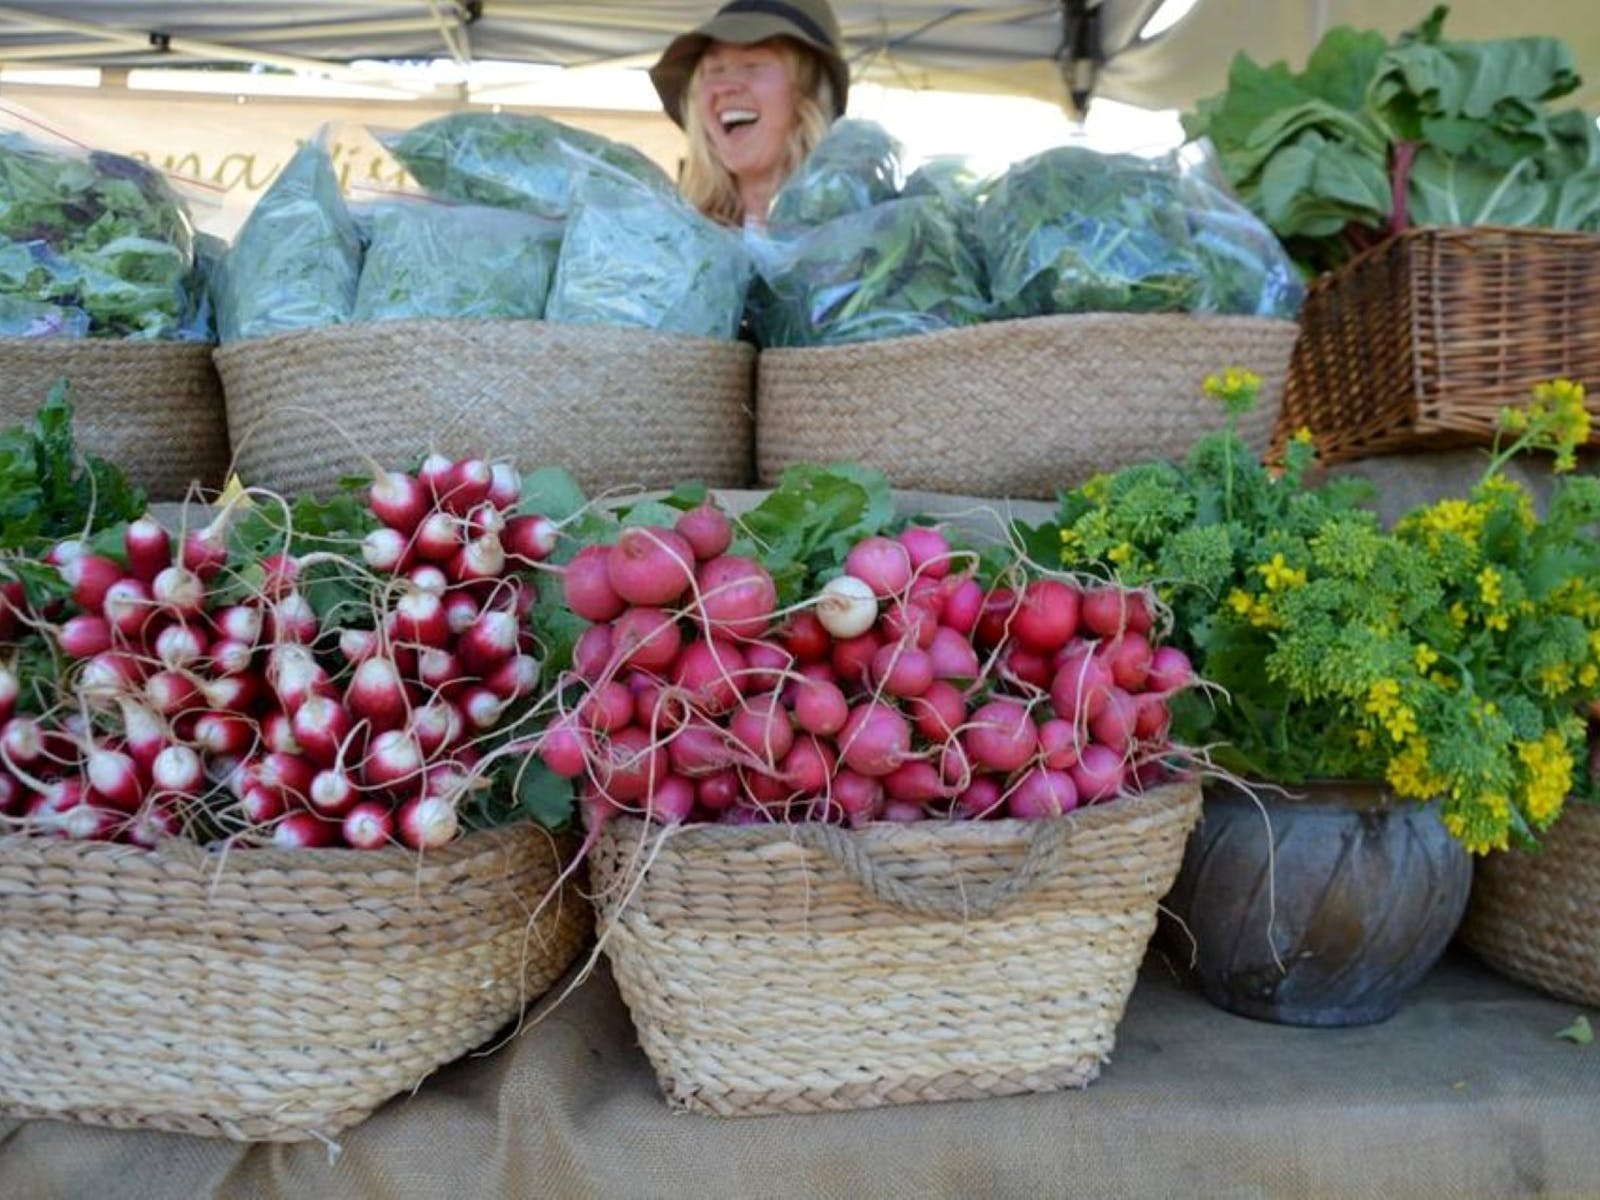 Image for Berry Farmers' Market